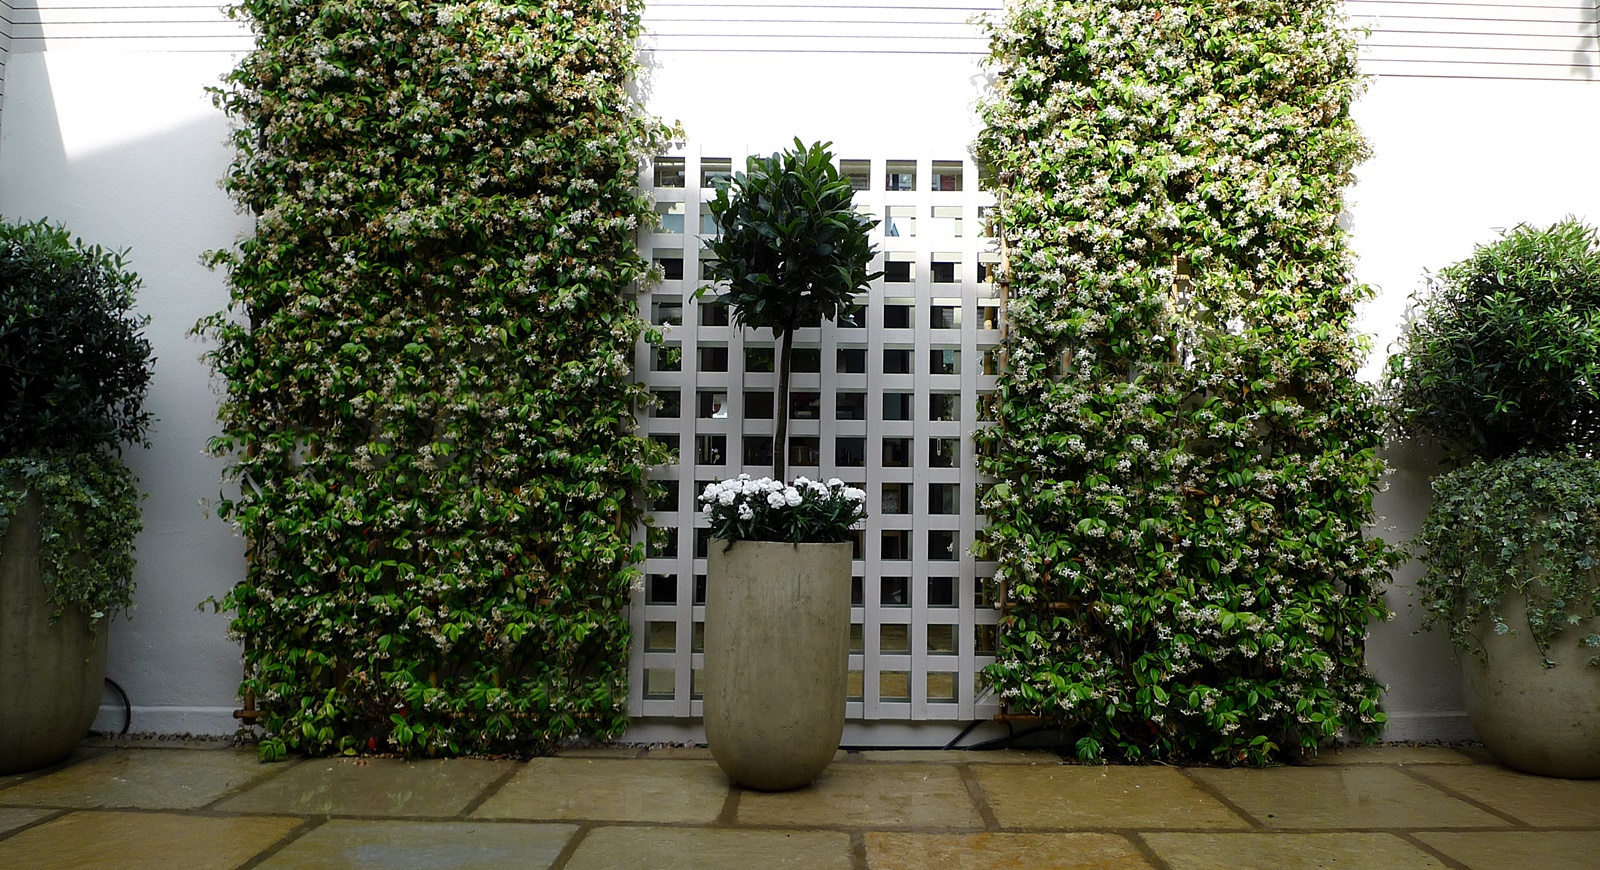 Courtyard minimalist contemporary garden design and designer putney sheen london